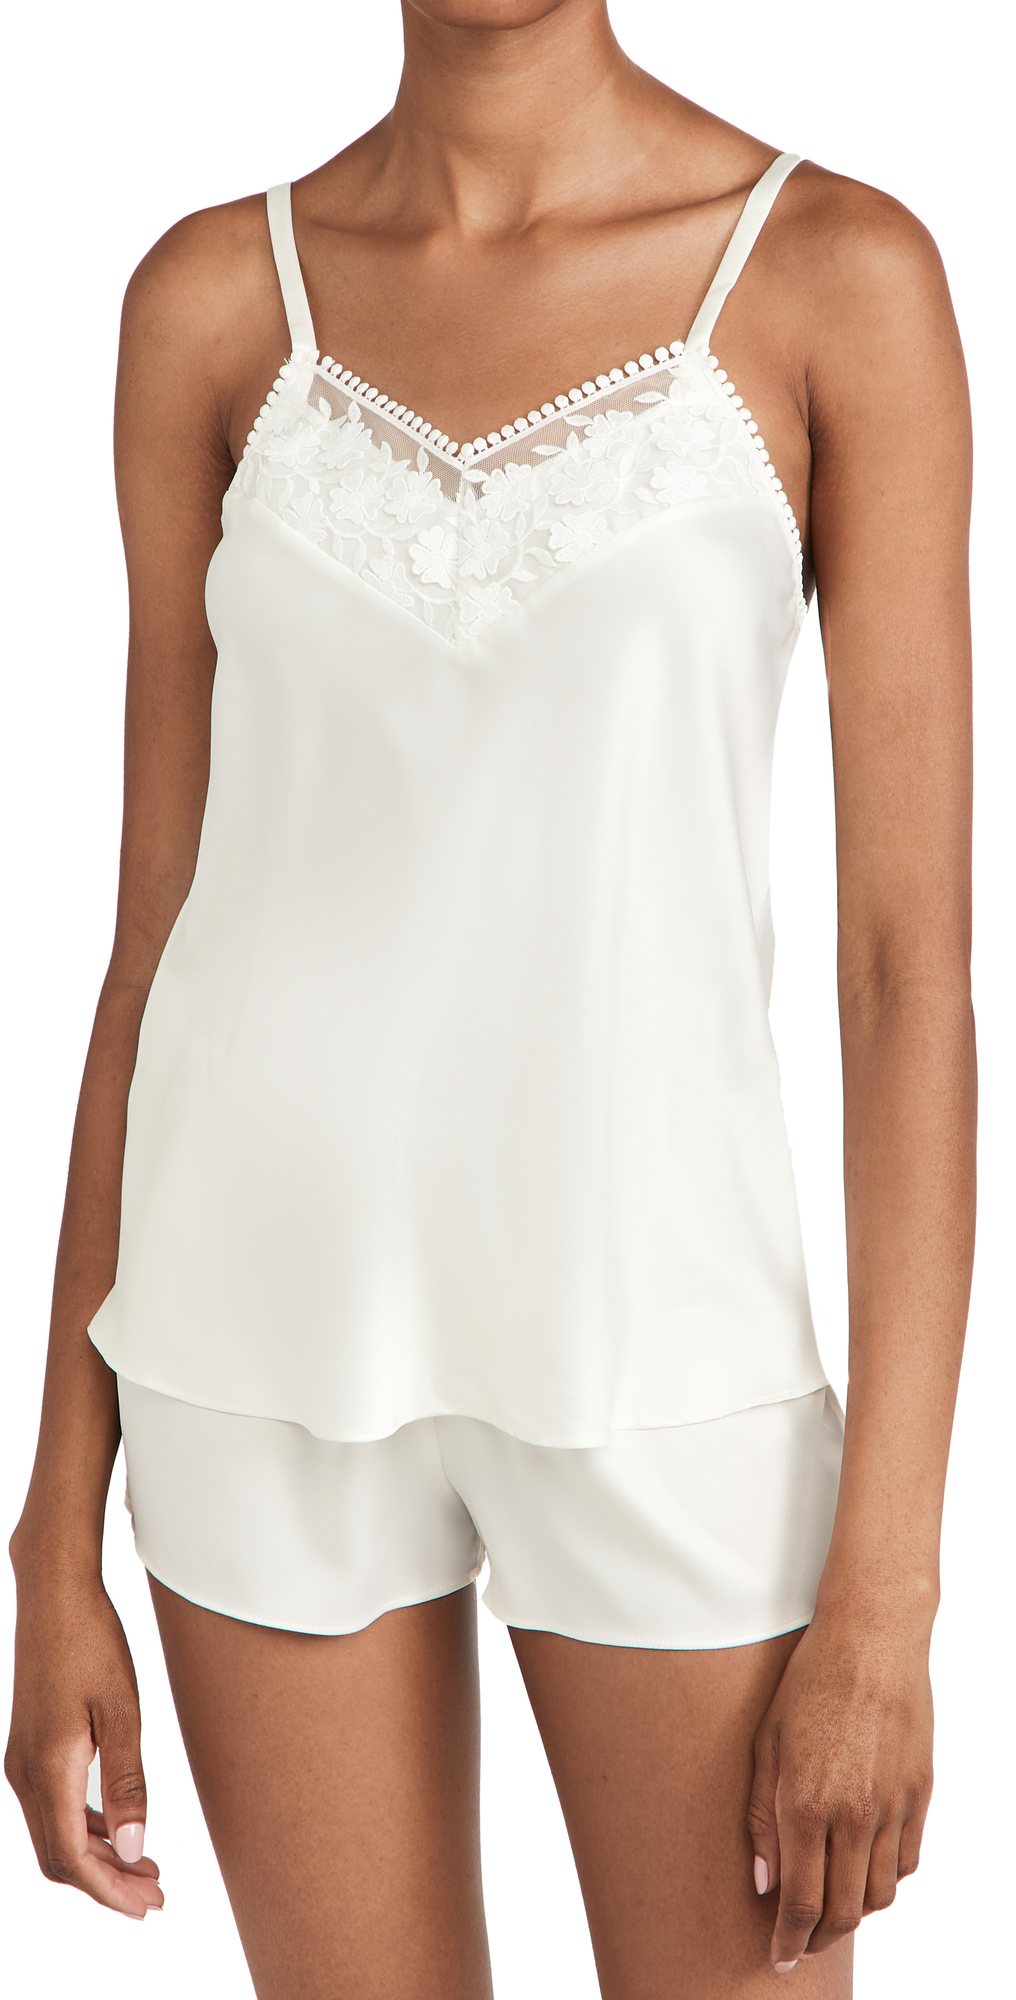 Kylie Charmeuse Cami Set with Lace